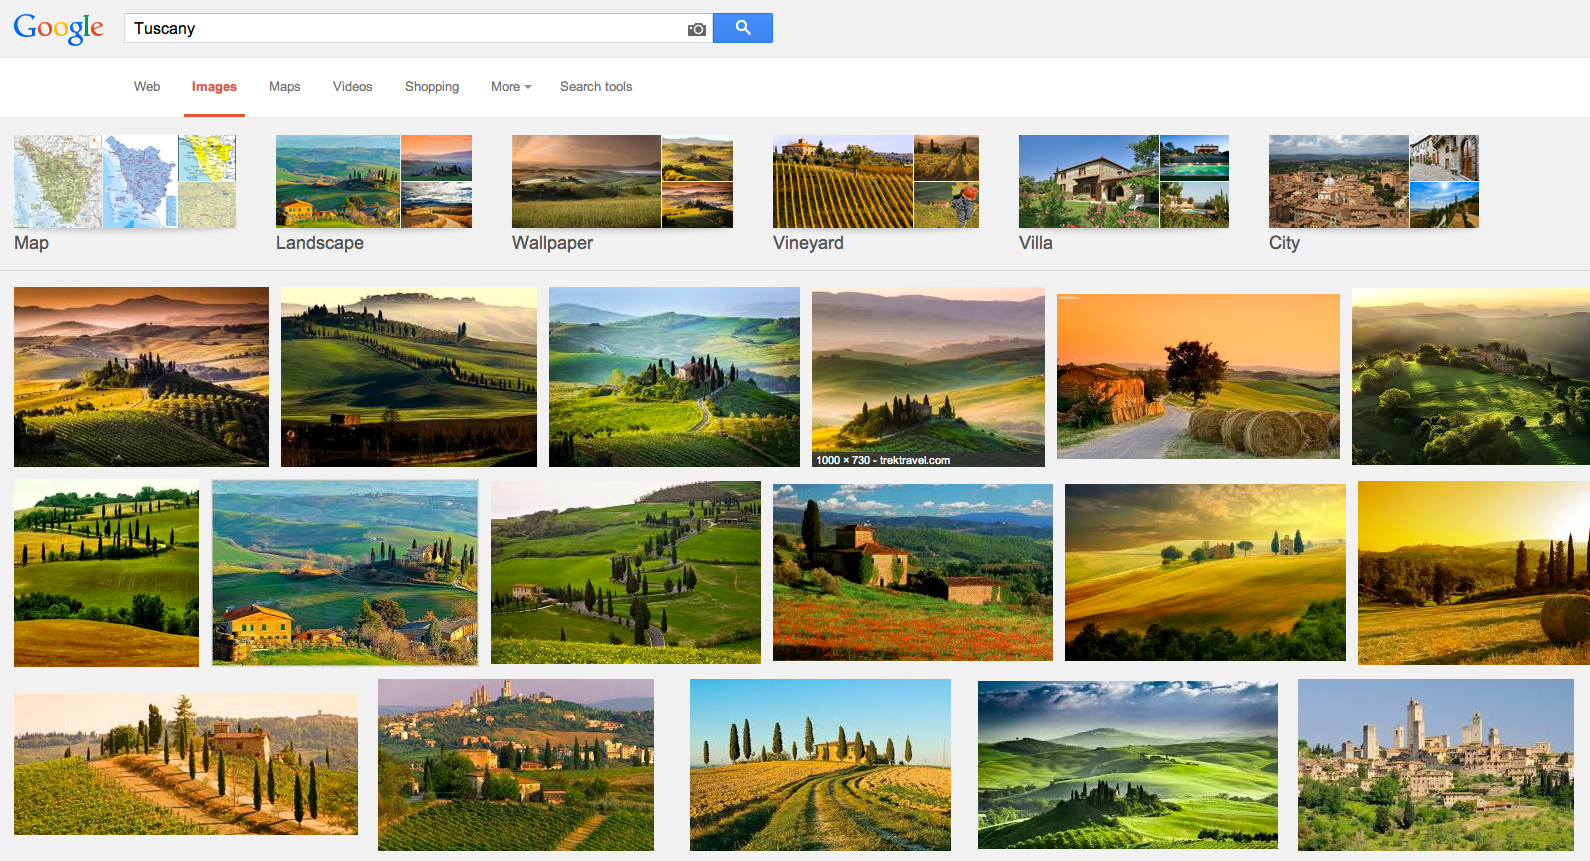 A search on Google for photos of Tuscany.